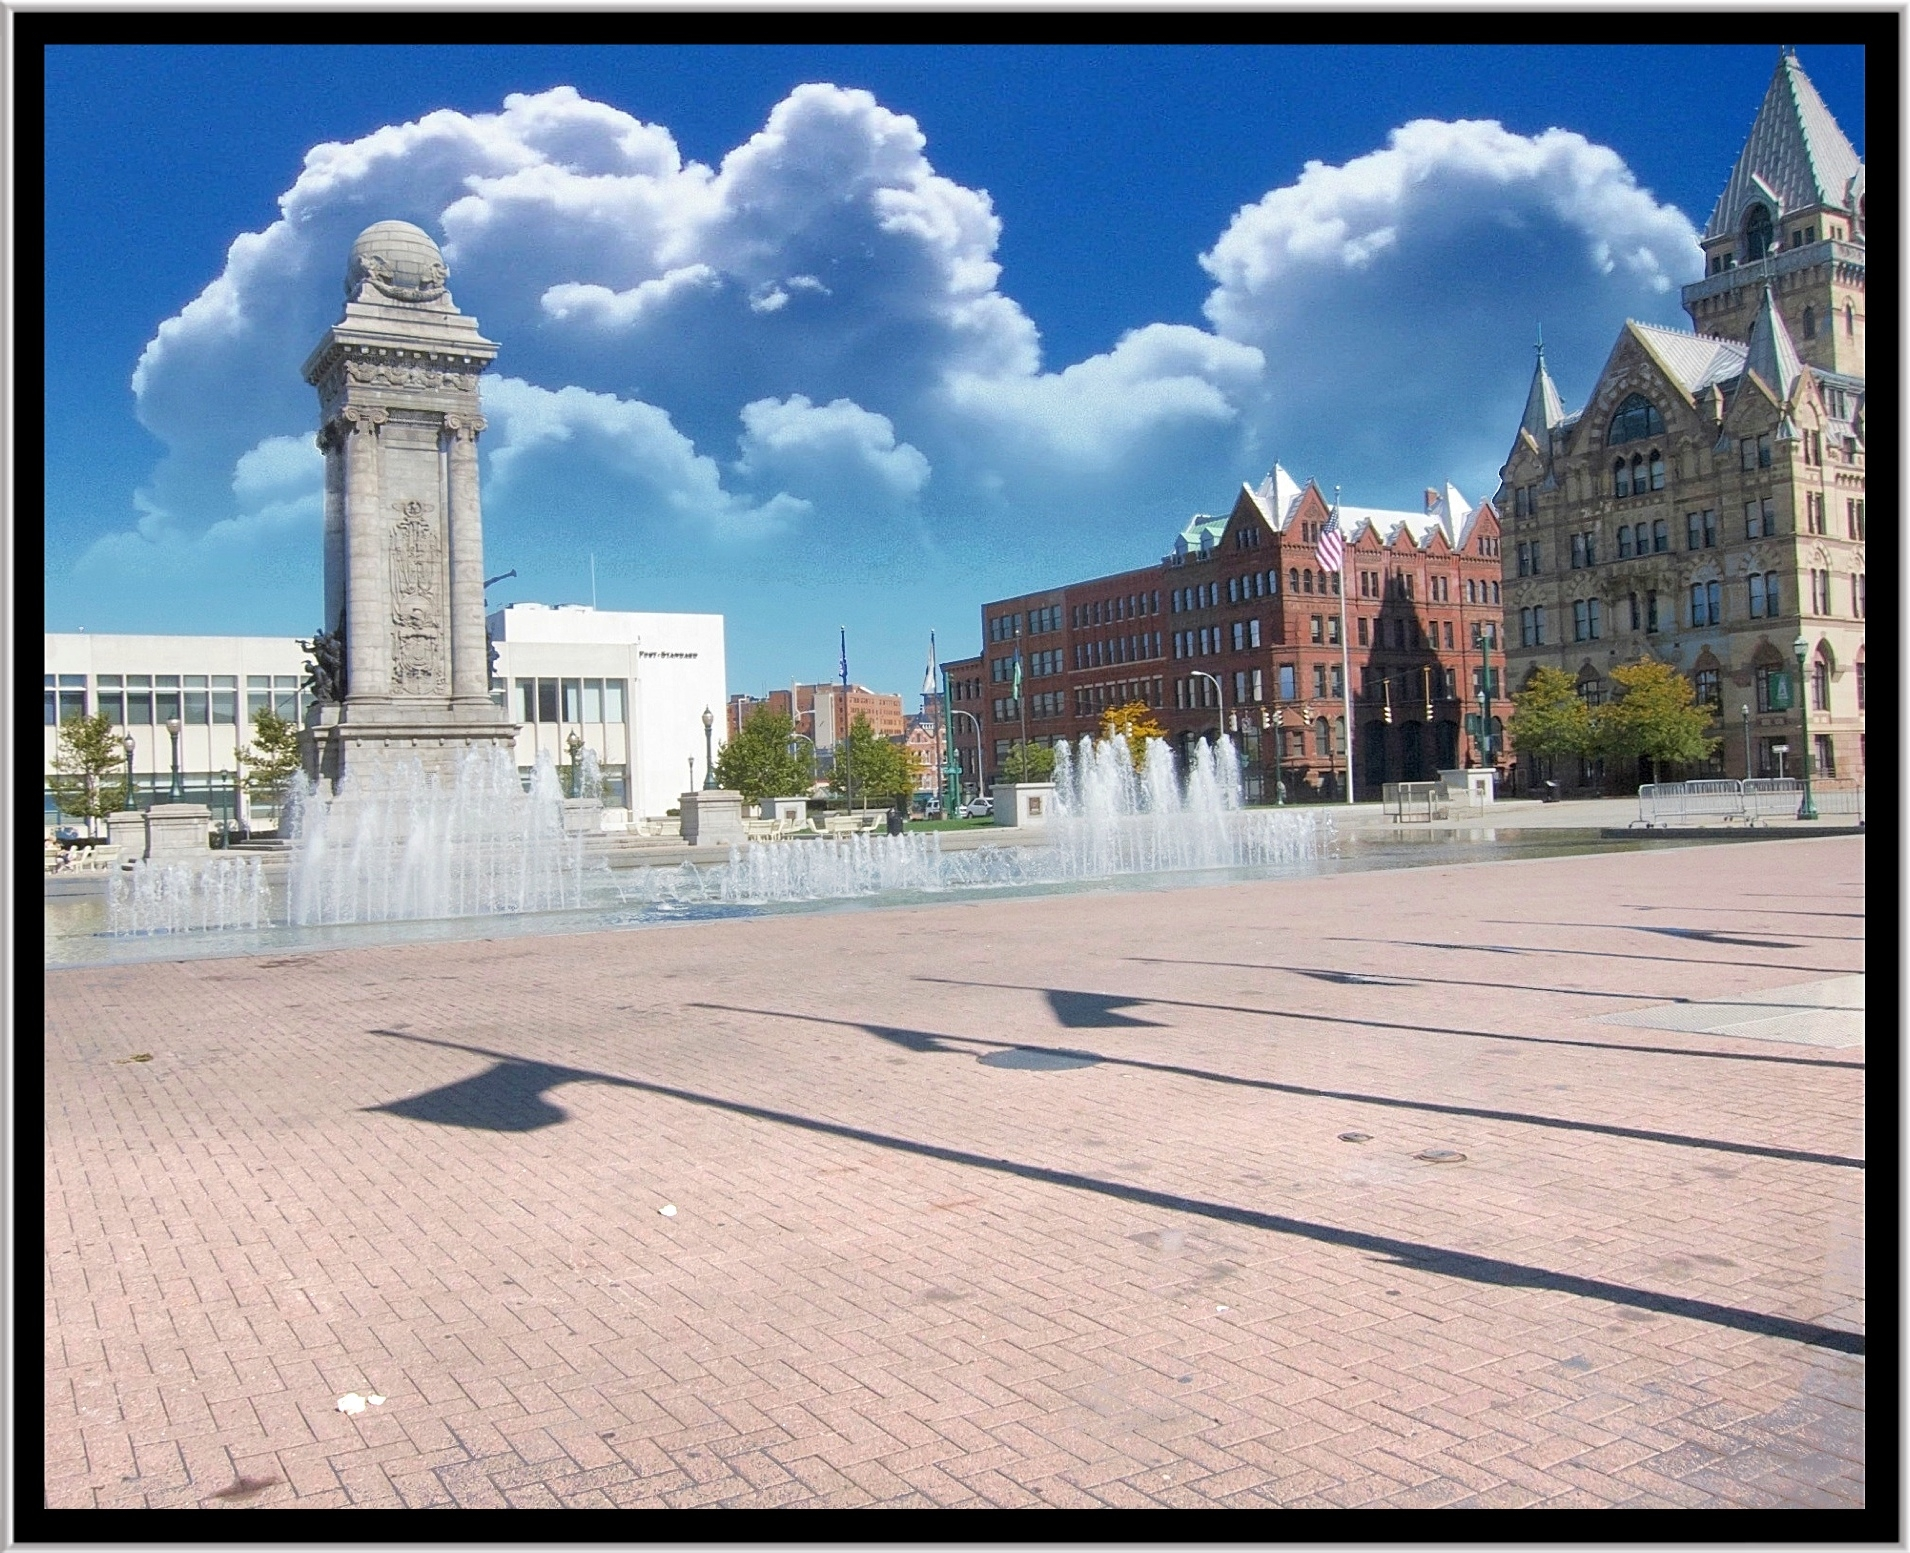 New york onondaga county kirkville - County Ny Newyork Building Tower Clouds Square Canal Site Memorial War Downtown State District Clinton Bank